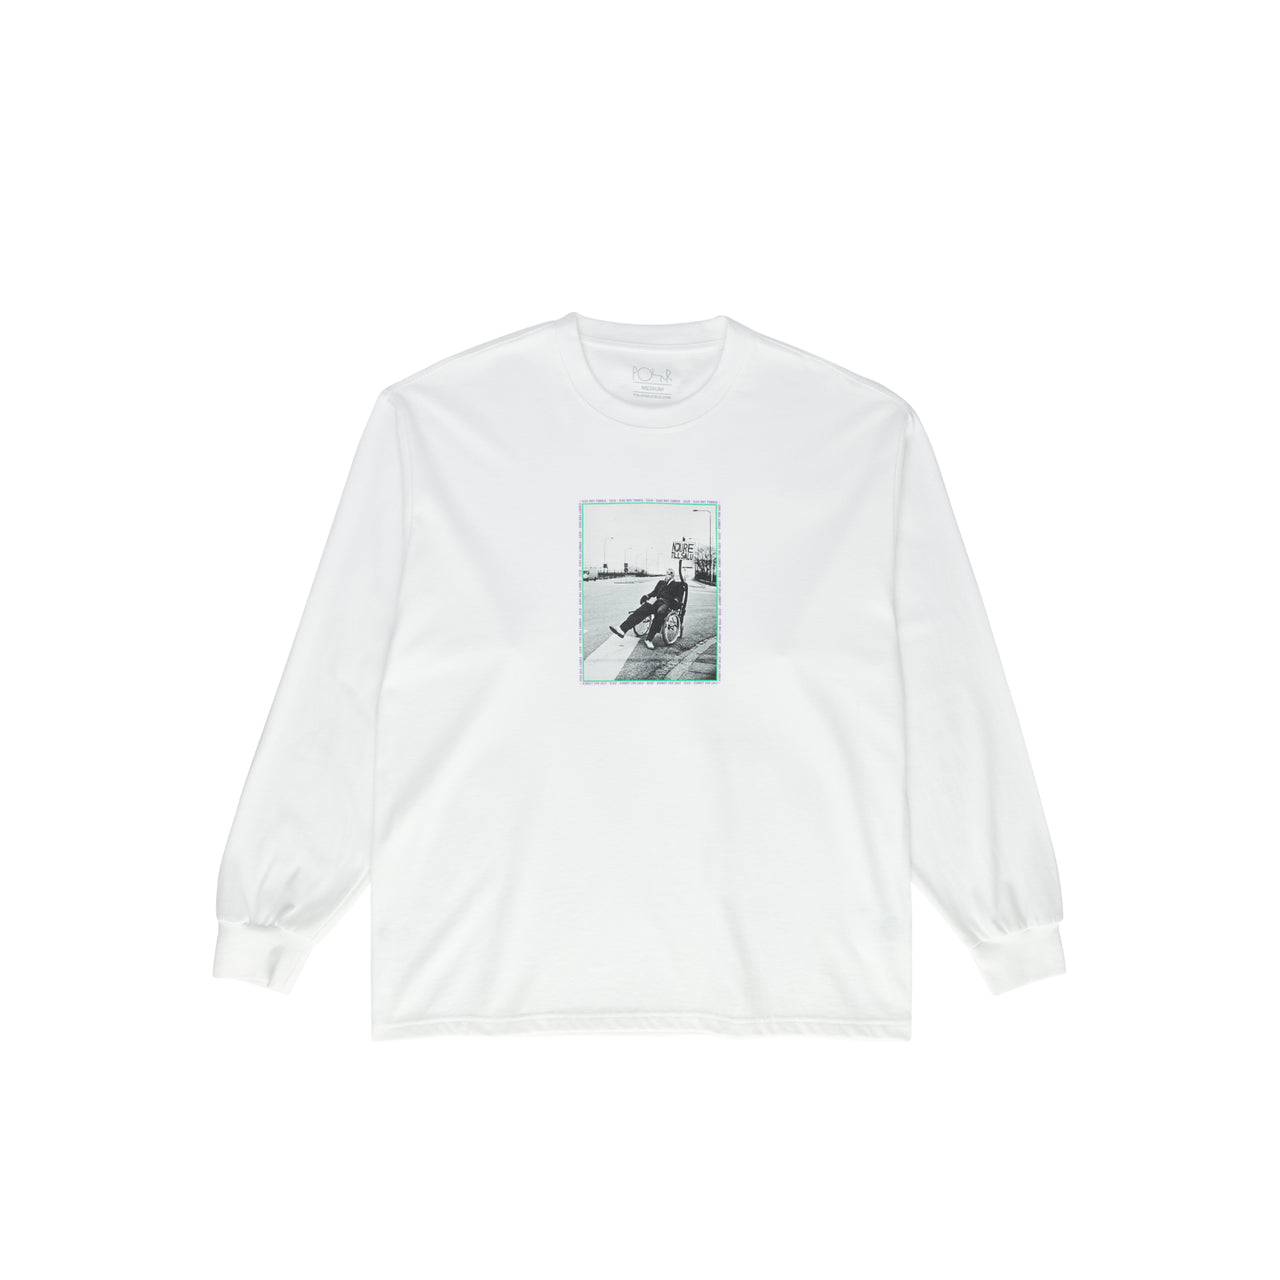 [Kidney Longsleeve] + Polar Skate Co.